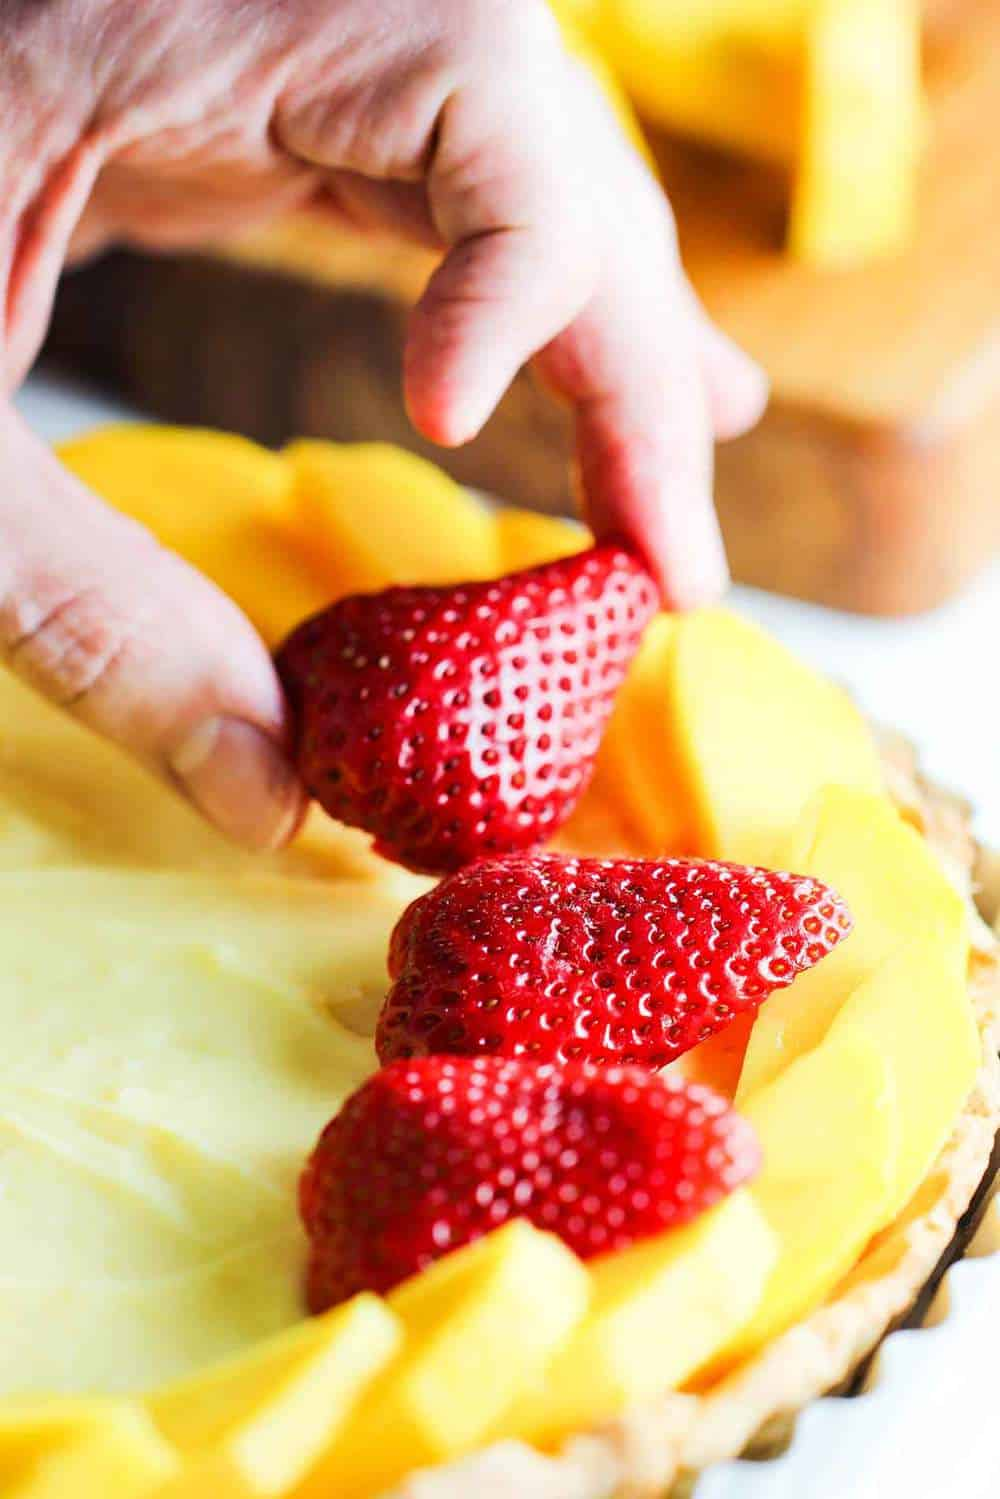 adding strawberries to the classic fruit tart